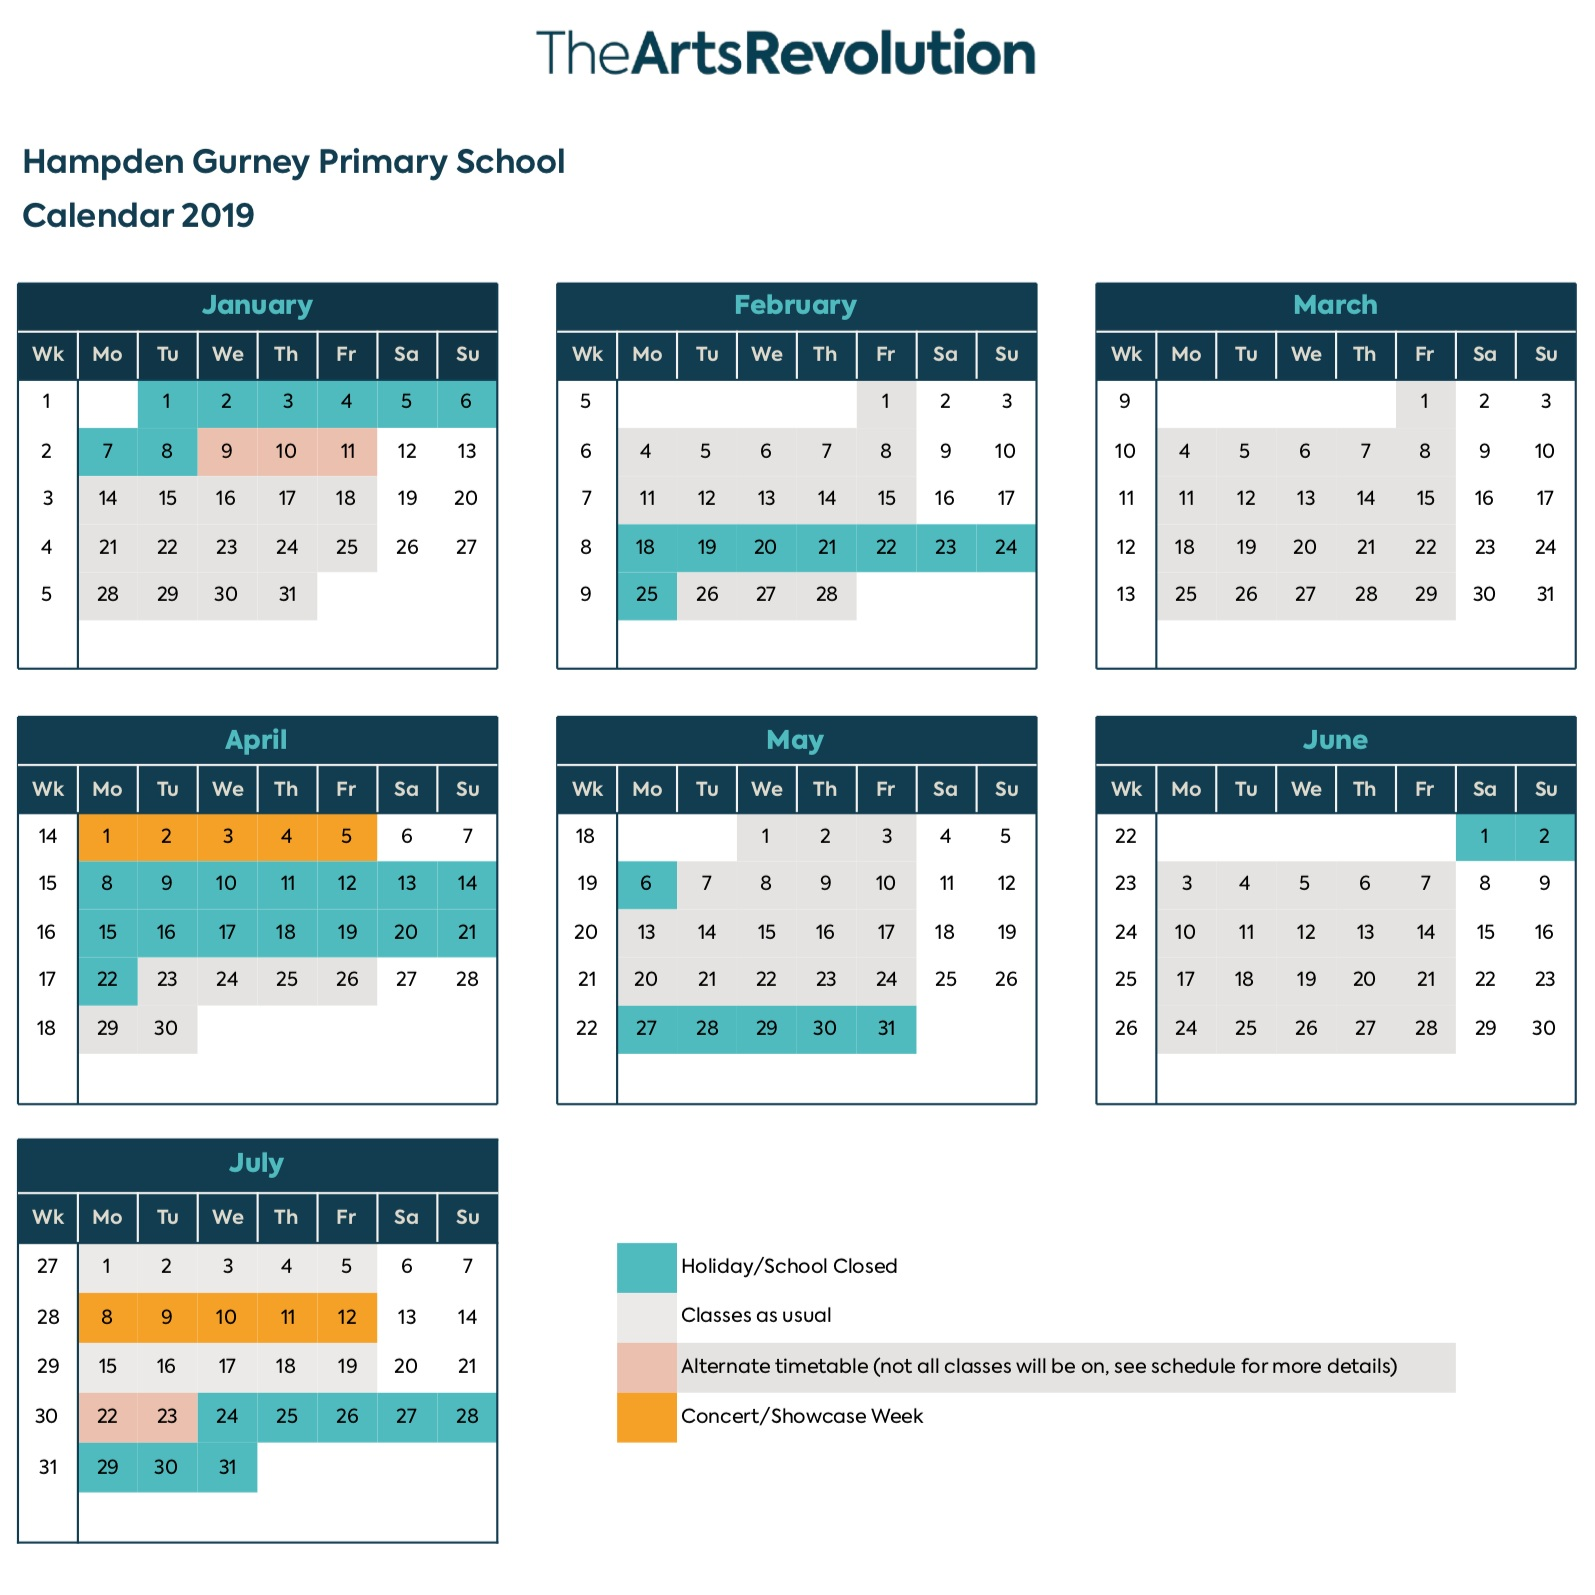 Calendar - Click to download